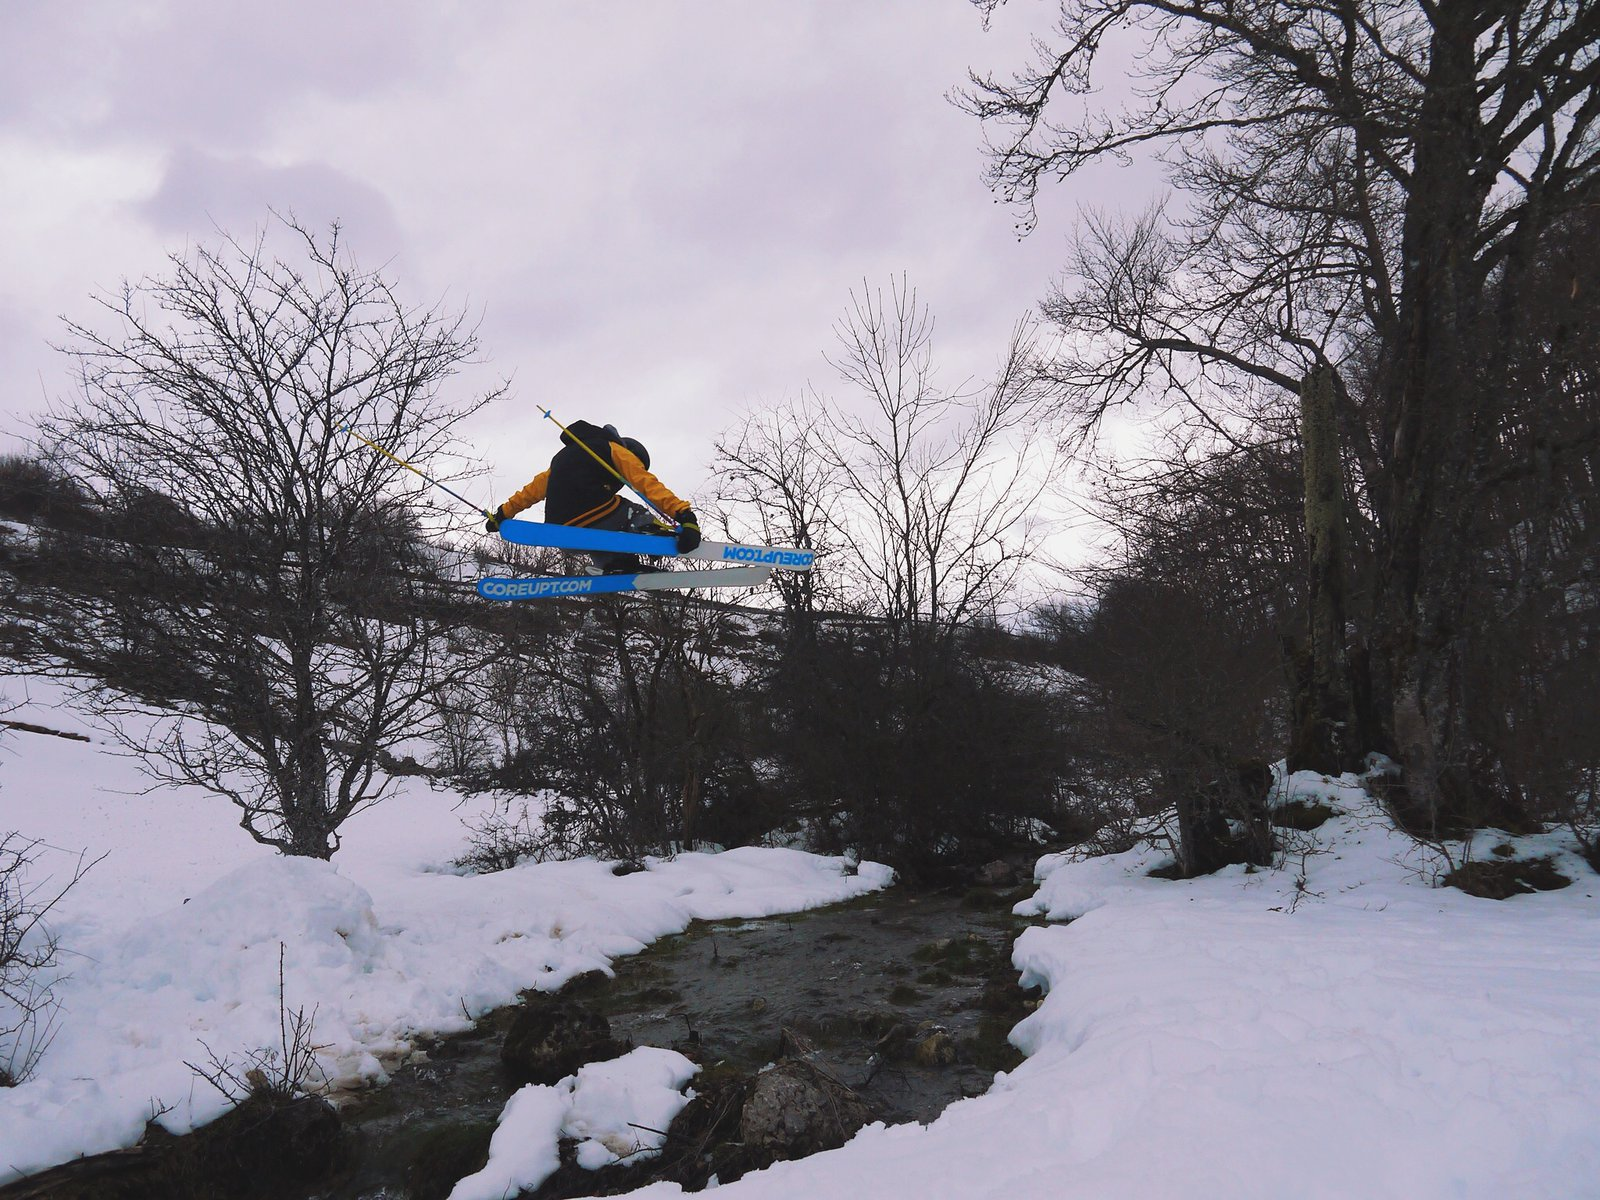 180 safety over the river